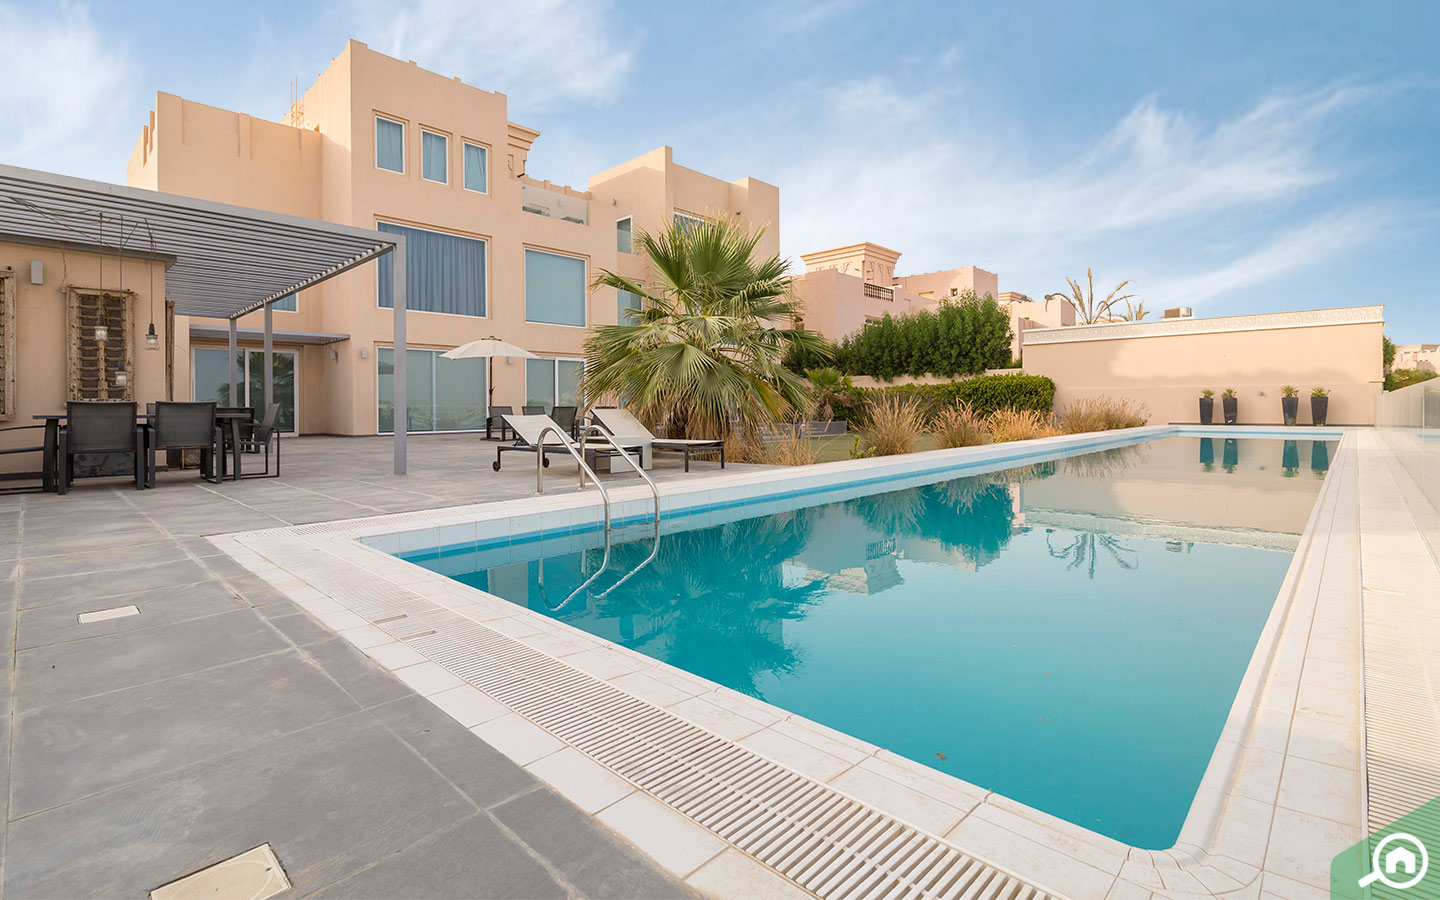 Private pool in a villa in Ras Al Khaimah